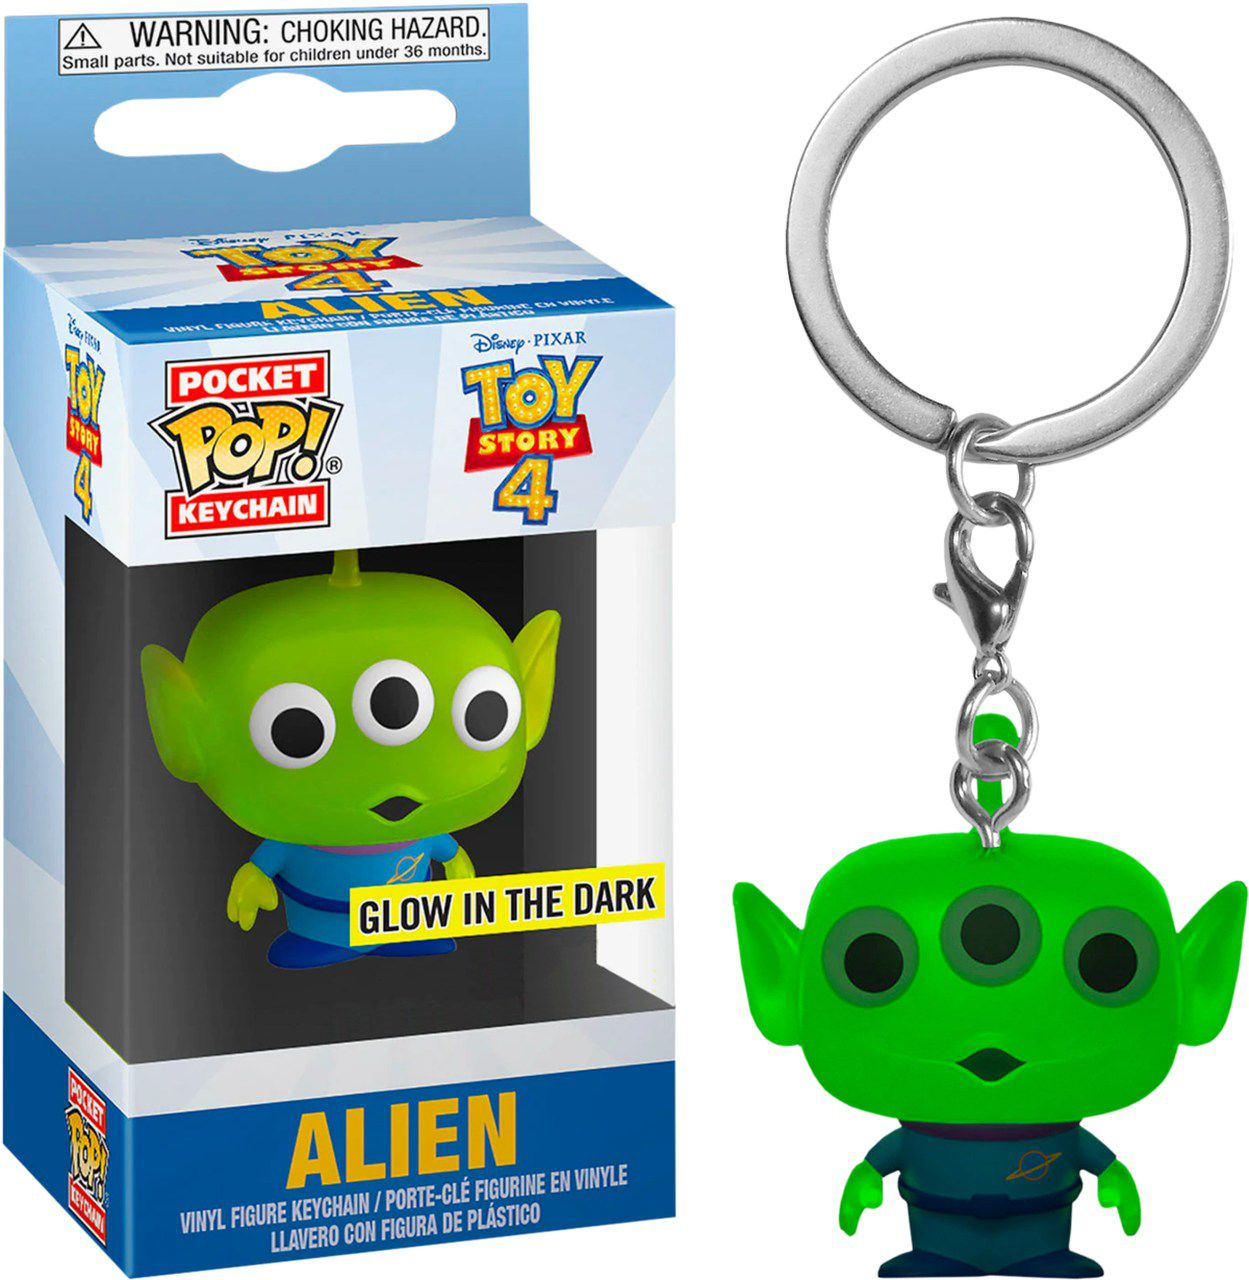 Pocket Pop Keychains (Chaveiro) Alien brilha no escuro (Alien Glow in the dark): Toy Story 4 - Funko